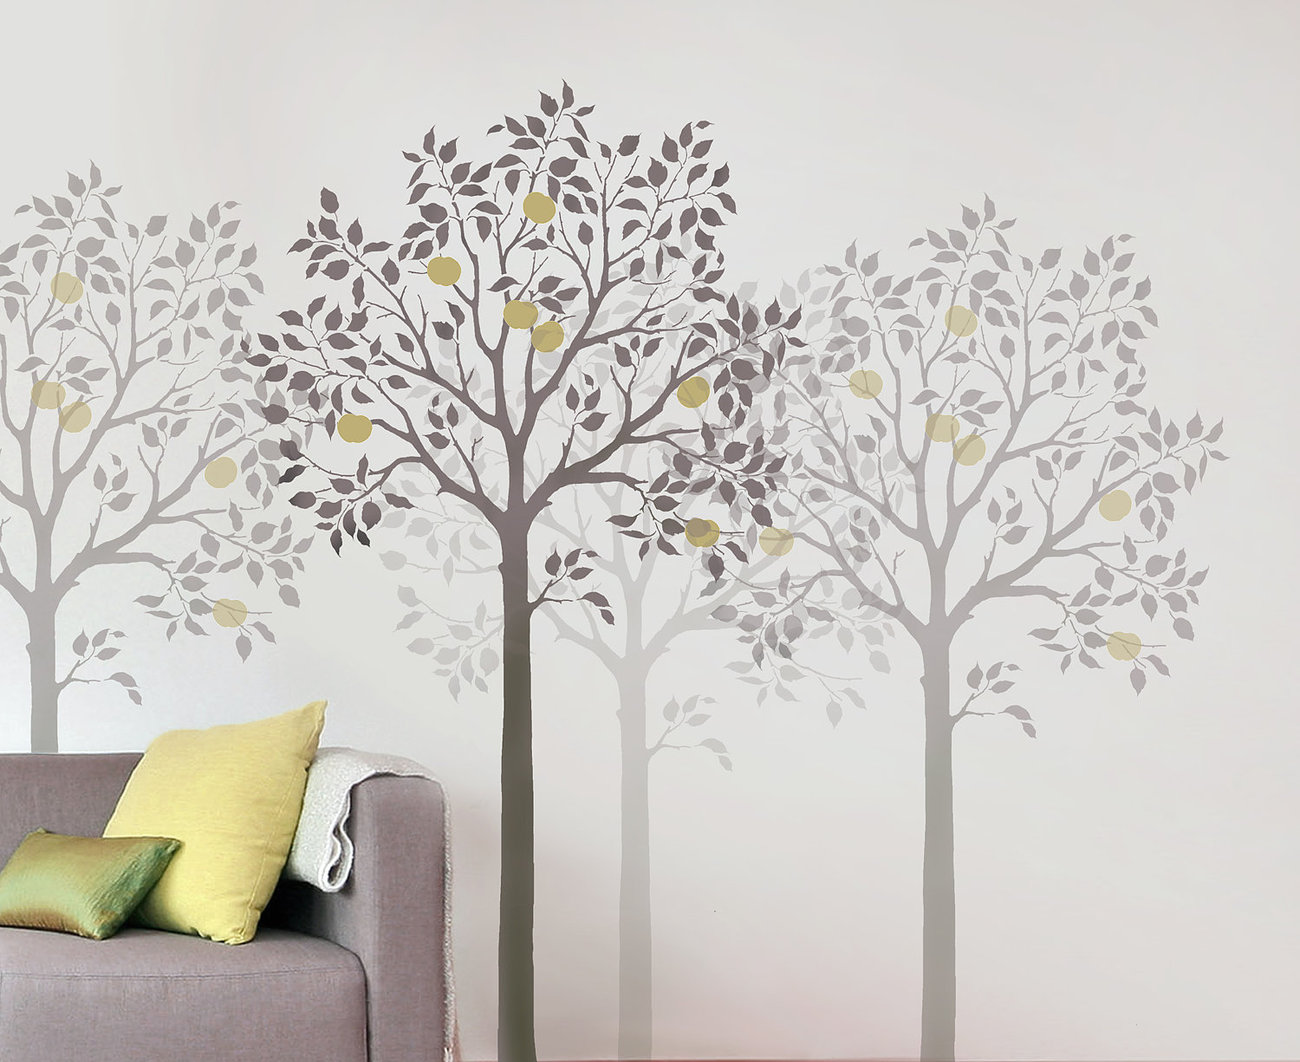 Wall Art Decor Stencils : Large fruit tree stencil easy reusable wall stencils for